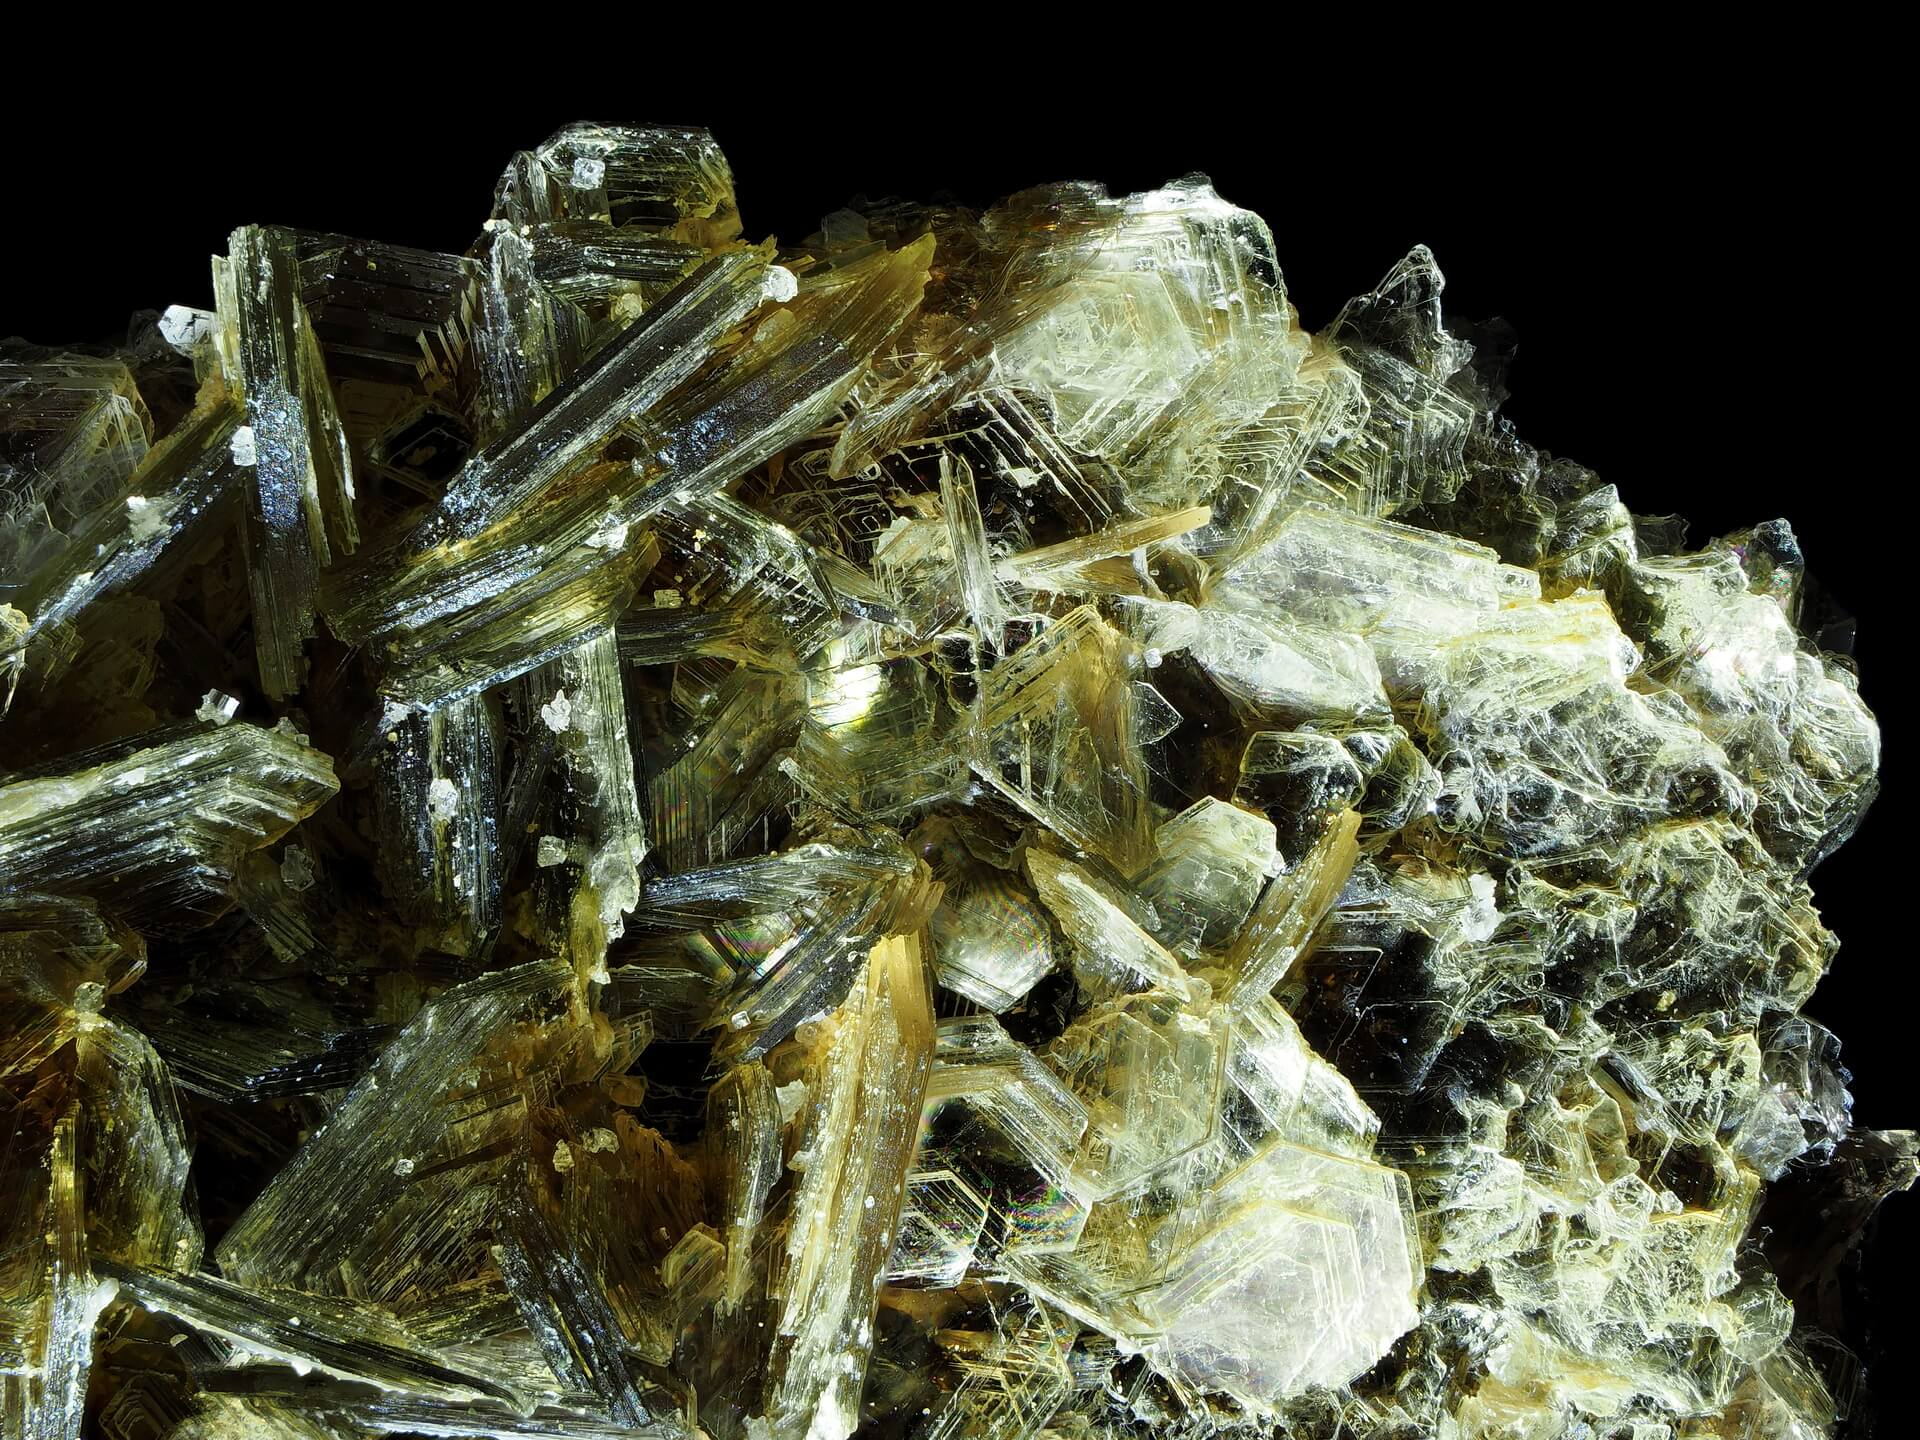 Another macro shot, showing a jumble of intersecting Muscovite blades.